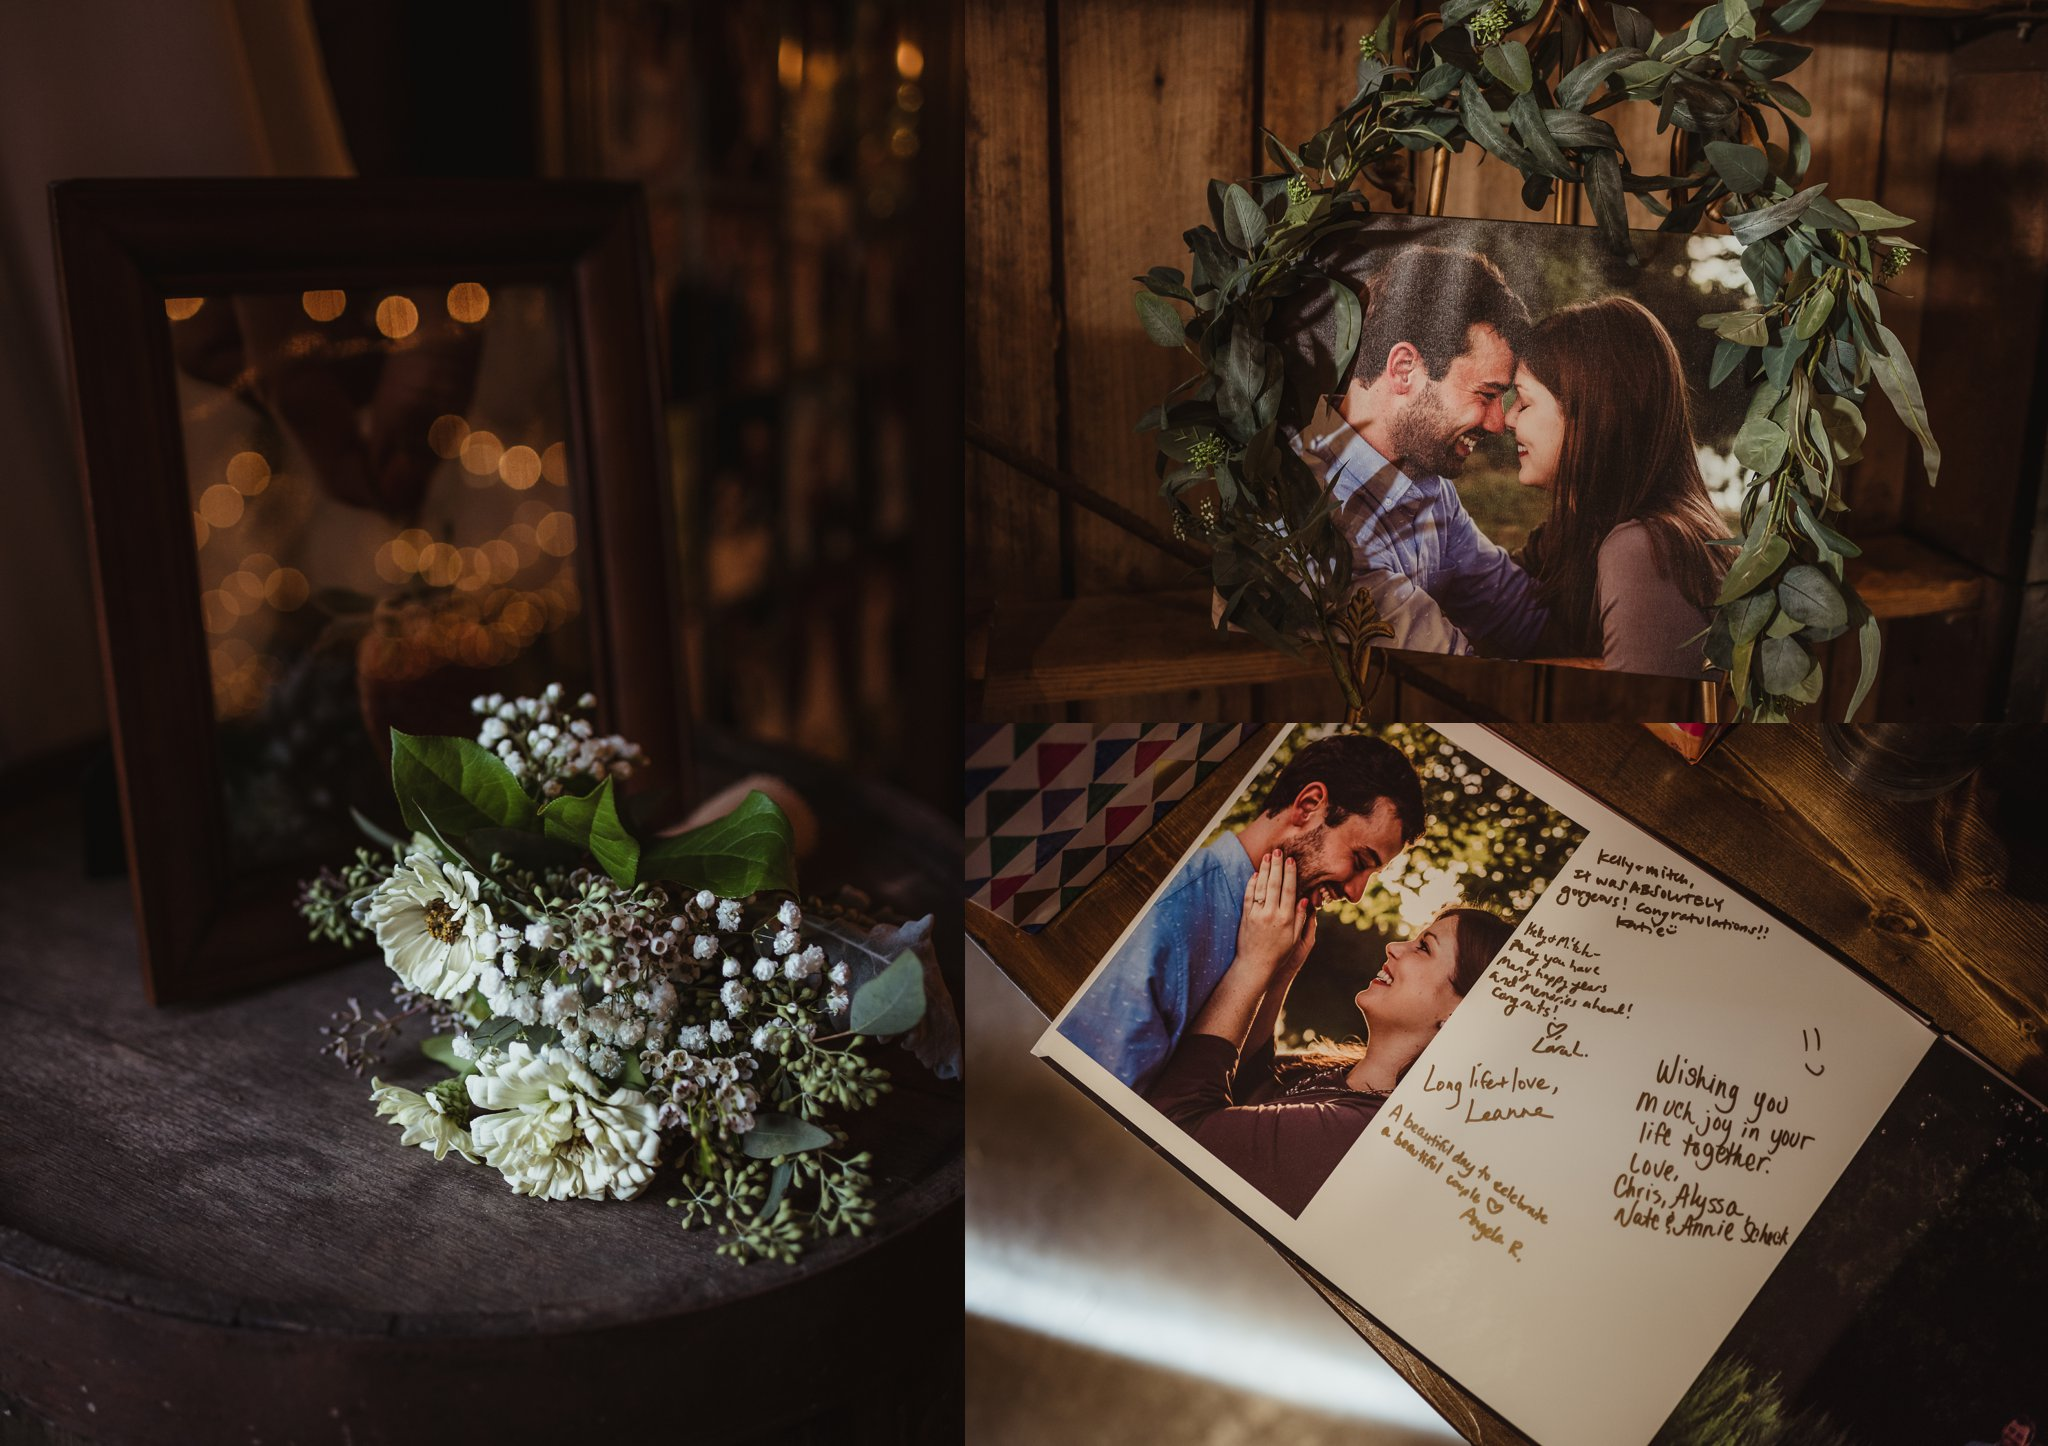 The bride and groom made a guest book from their engagement photos, displayed at their wedding reception at the Little Herb House in Raleigh, North Carolina. Photos by Rose Trail Images.